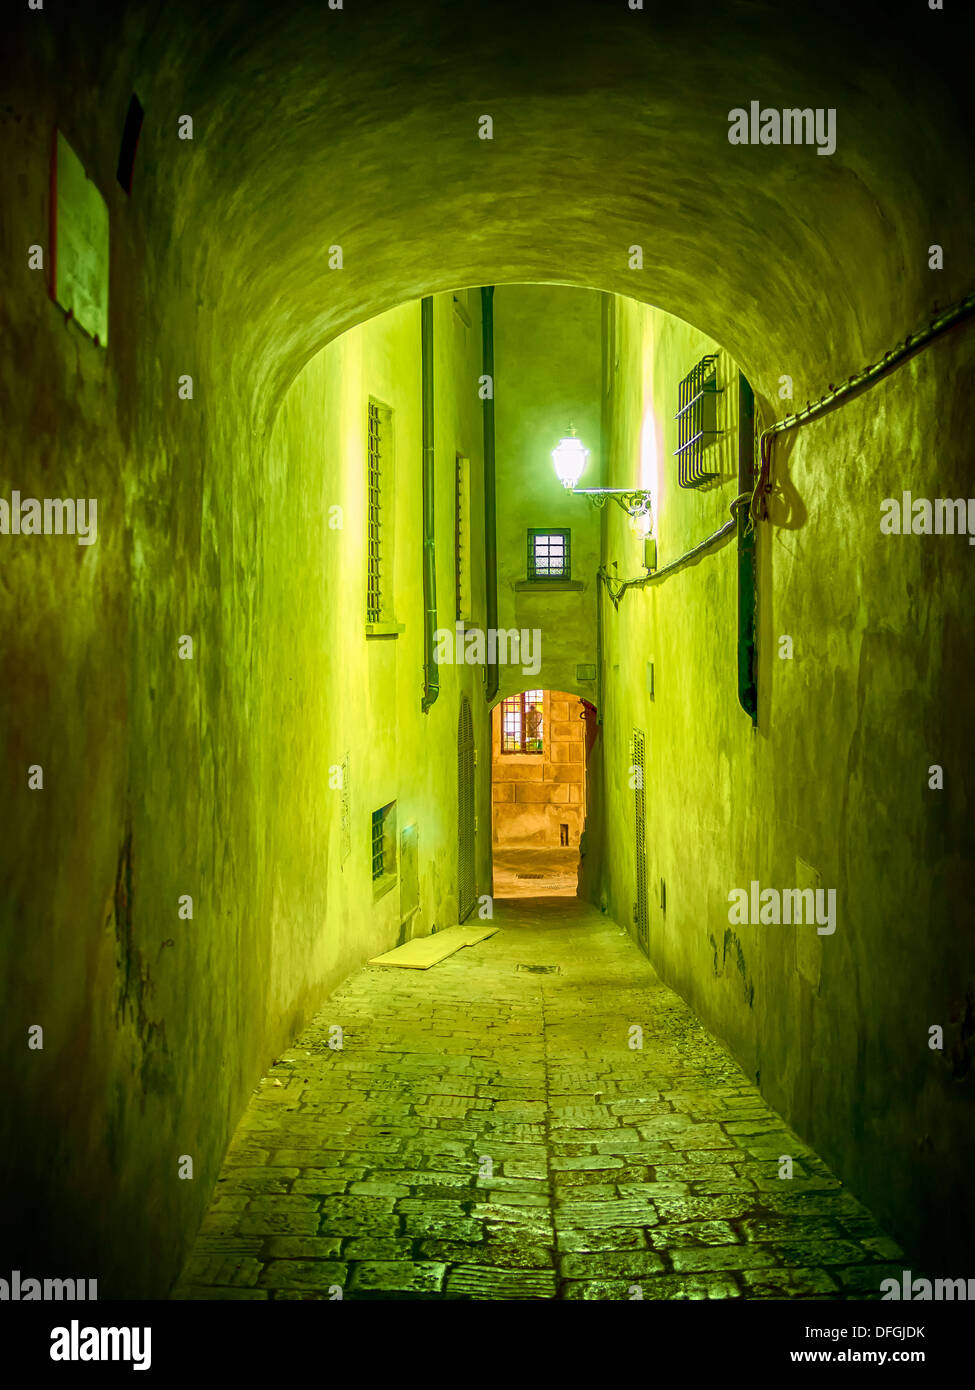 Picture of a narrow illuminated alley in Volterra, Italy - Stock Image